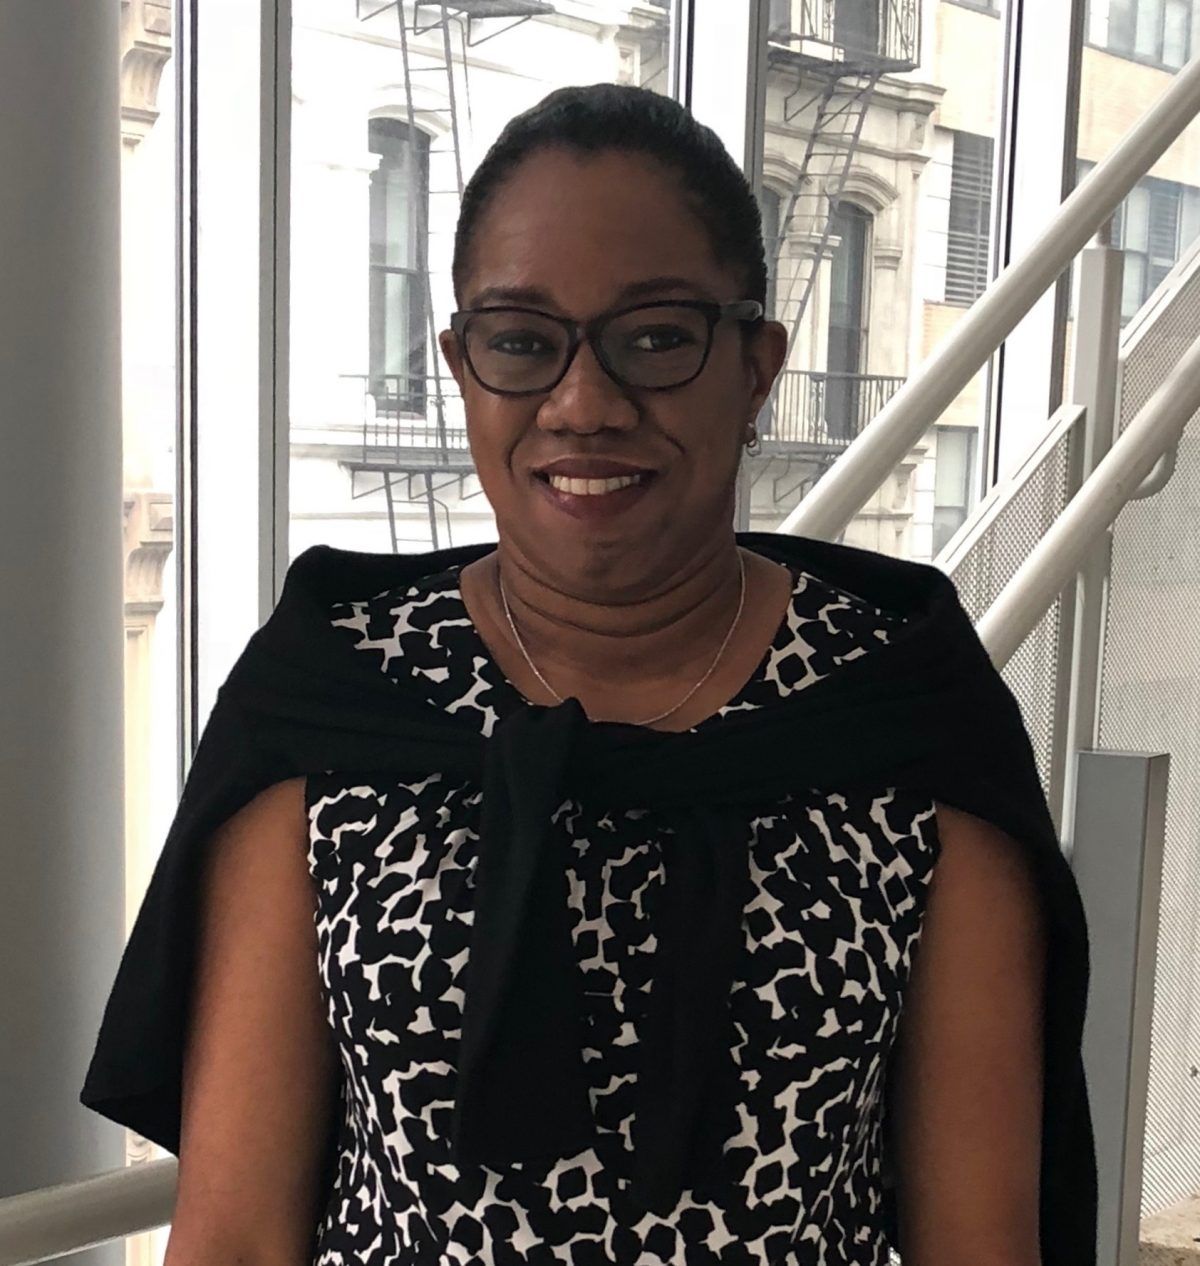 Jarienn James is the Lewis Steel Racial Justice Fellow at New York Law School. She performs a host of legal research and advocacy work furthering the initiatives of the Racial Justice Project and the Fines and Fees Justice Center.